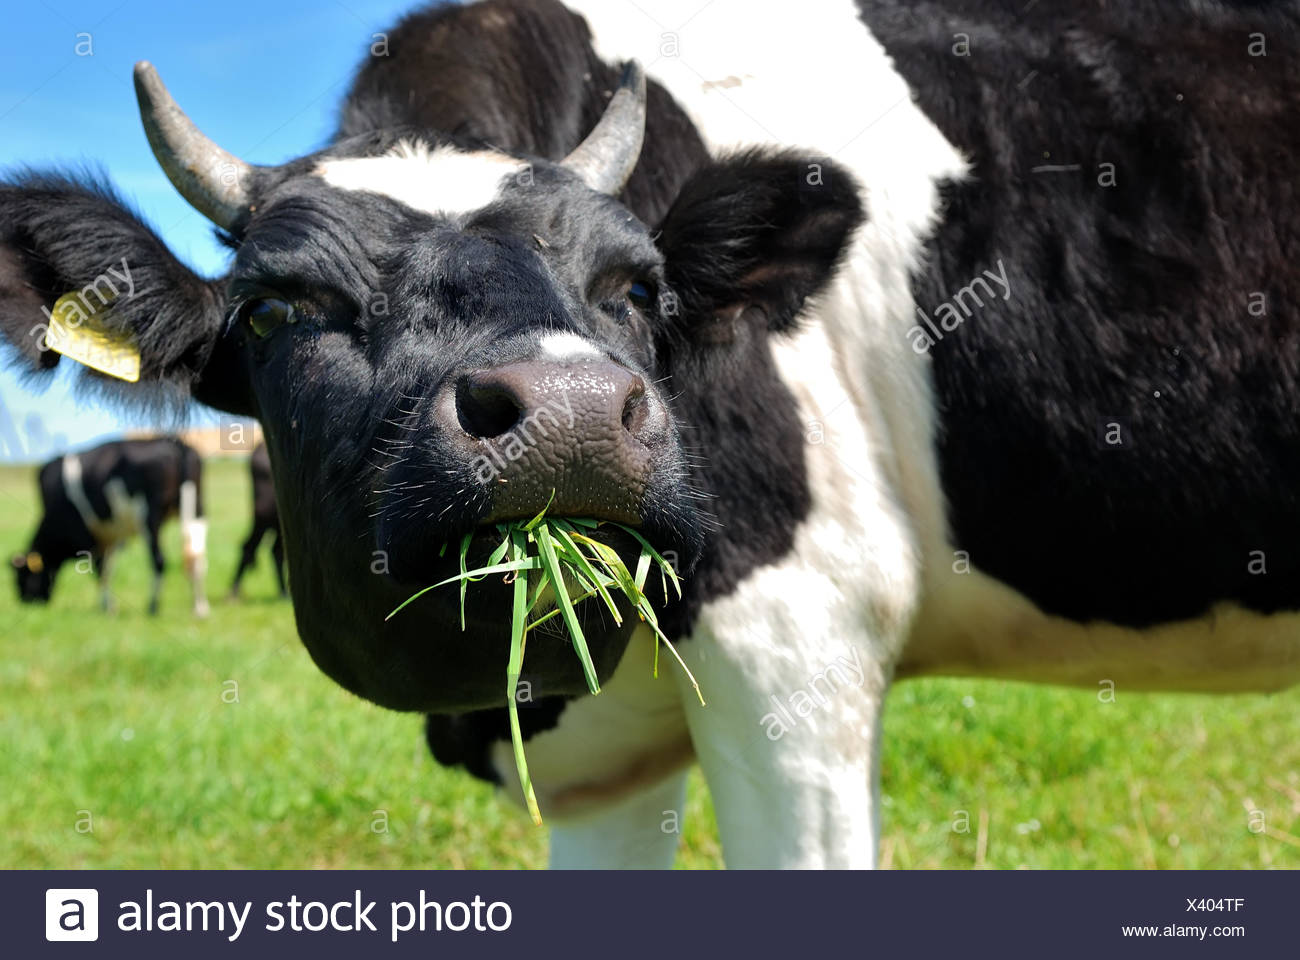 cow chewing grass - Stock Image